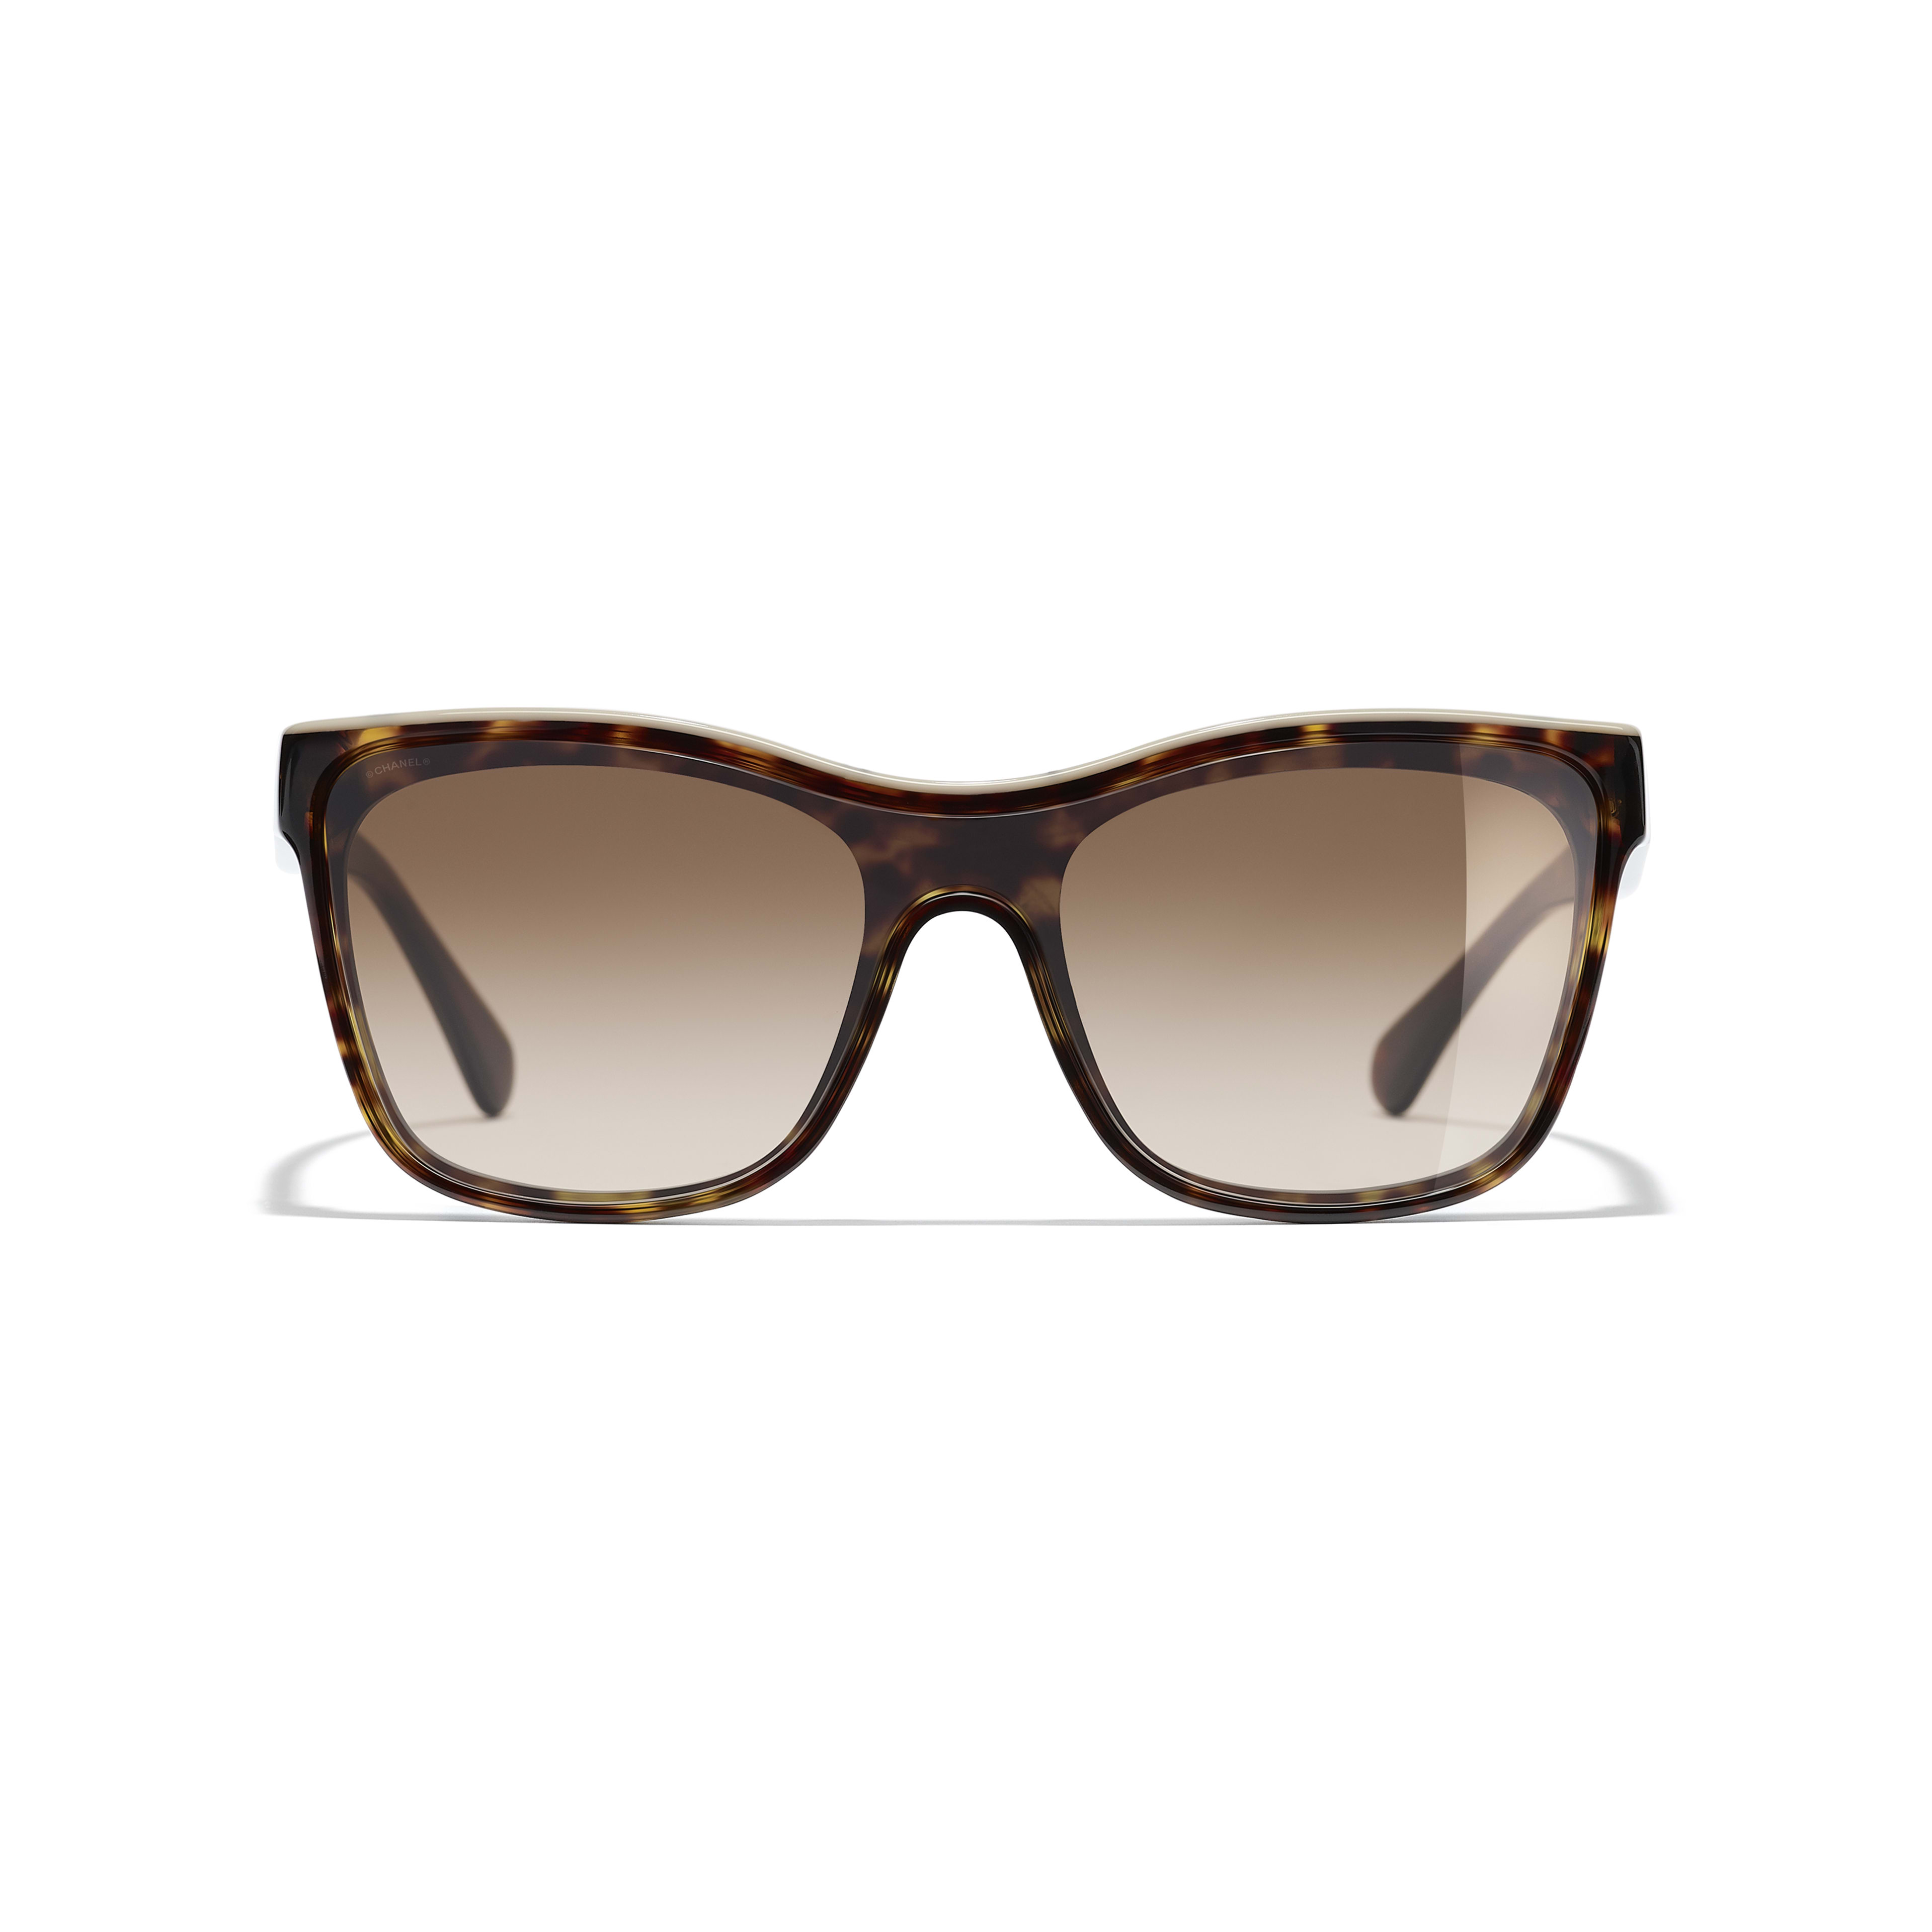 Shield Sunglasses - Dark Tortoise & Beige - Acetate - CHANEL - Alternative view - see standard sized version